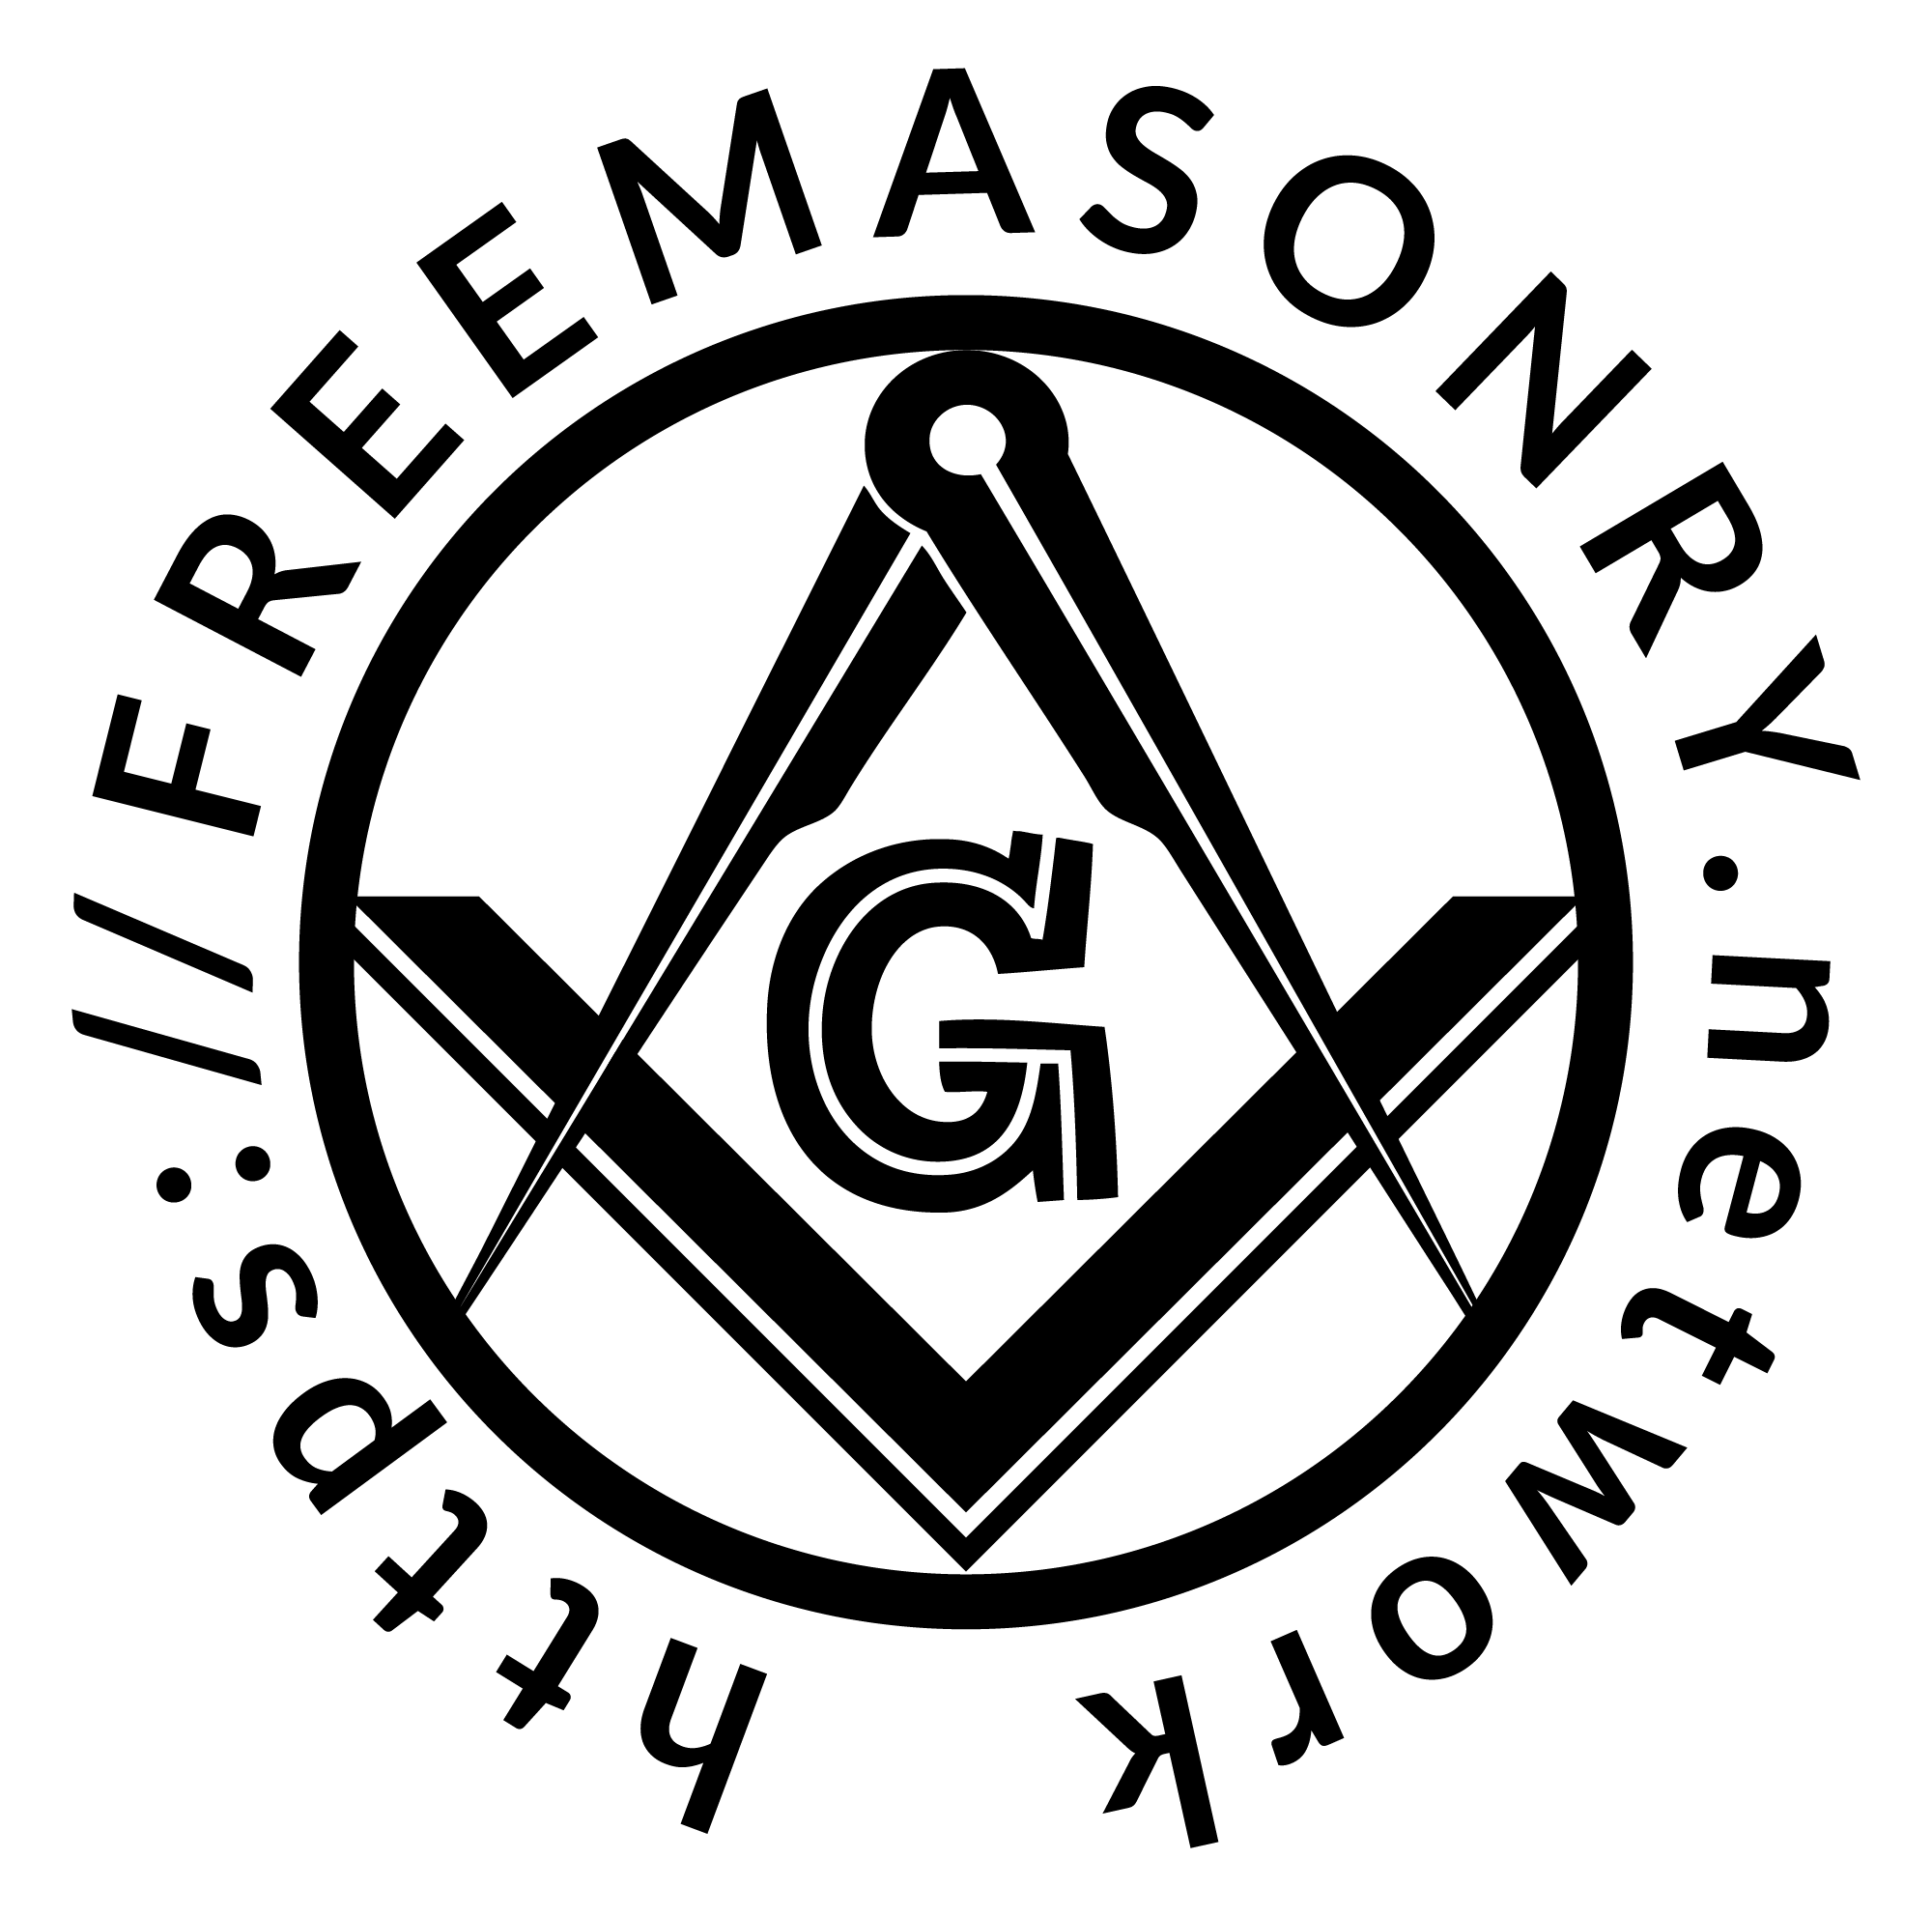 THE ROLE OF MUSIC IN FREEMASONRY